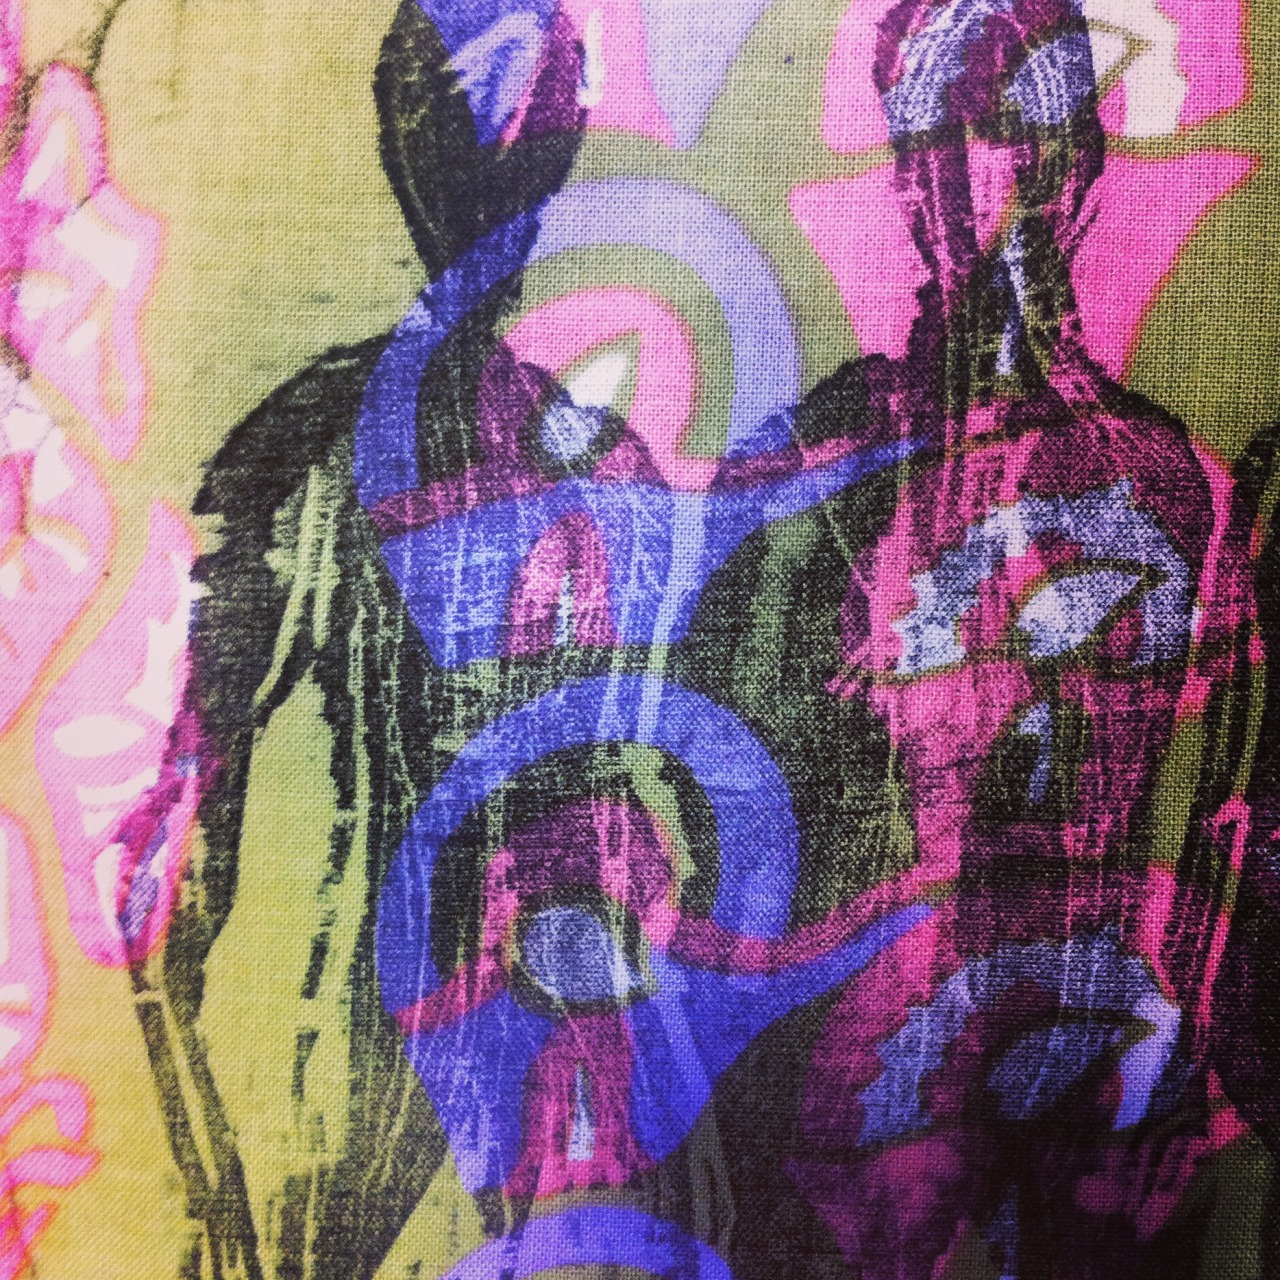 UNCLAIMED BODIES - Cover detail